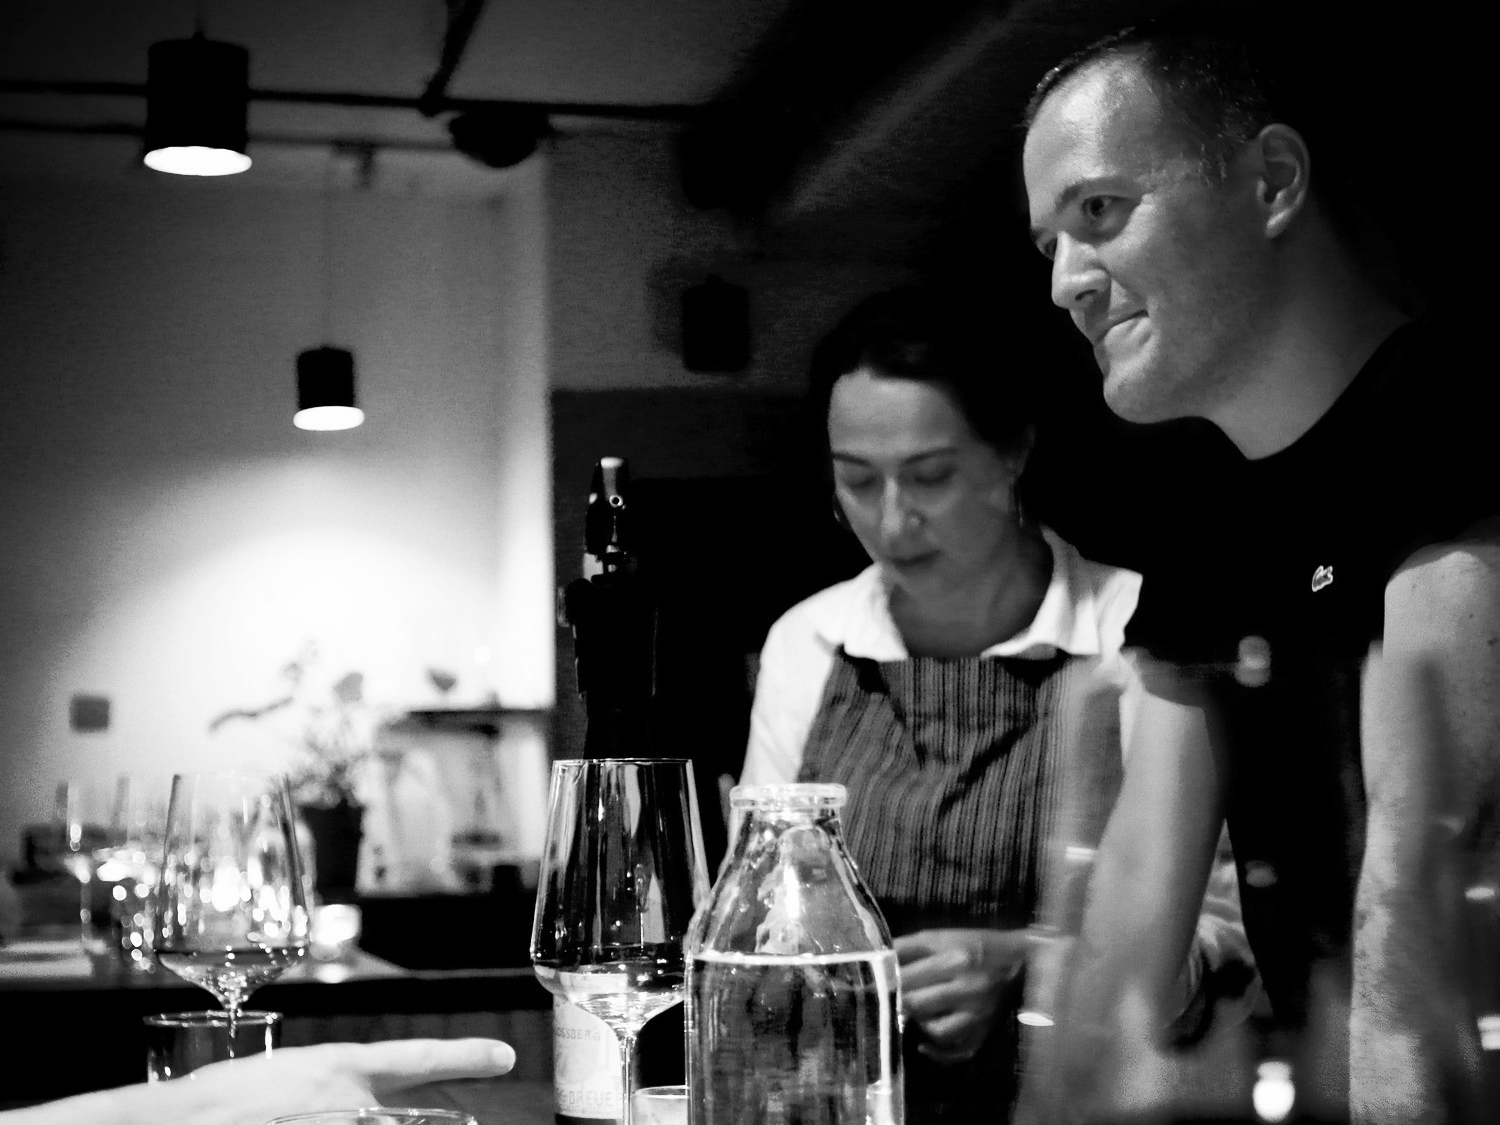 Trinie Thai-Parker & Luke Wohlers at the pop-up wine bar WALDEN